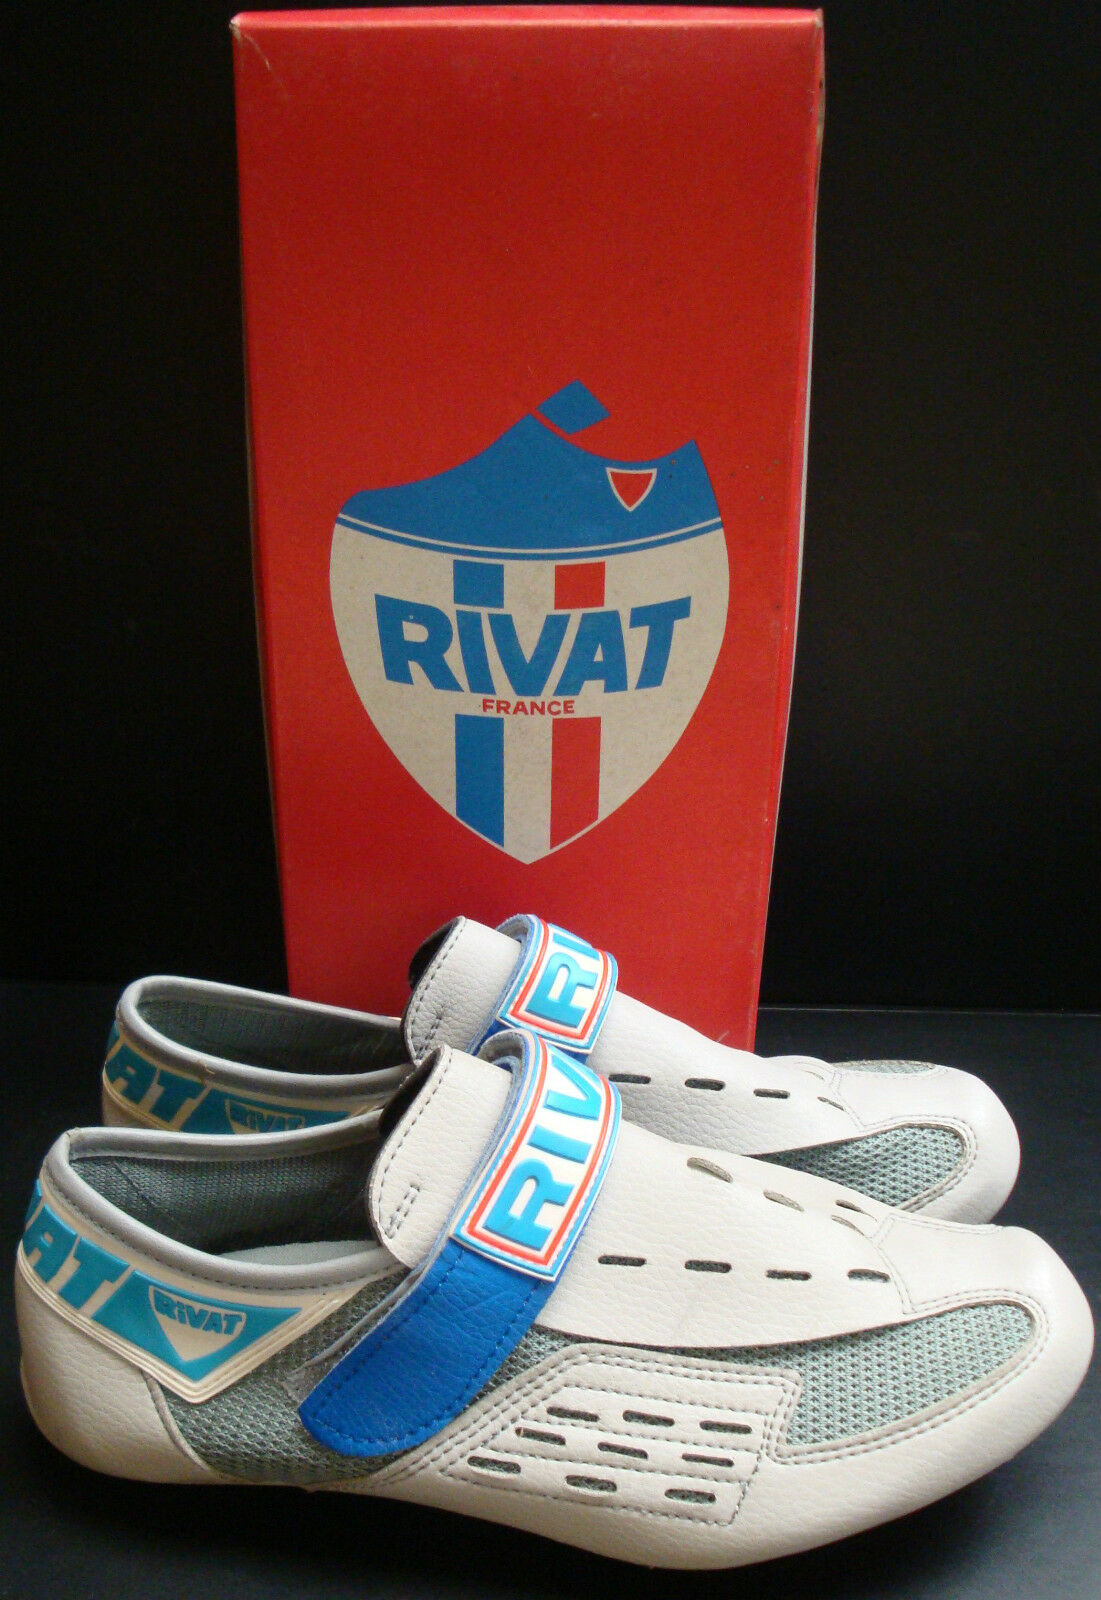 NIB  RIVAT SHOES SIZE 39 VINTAGE MADE IN FRANCE 4